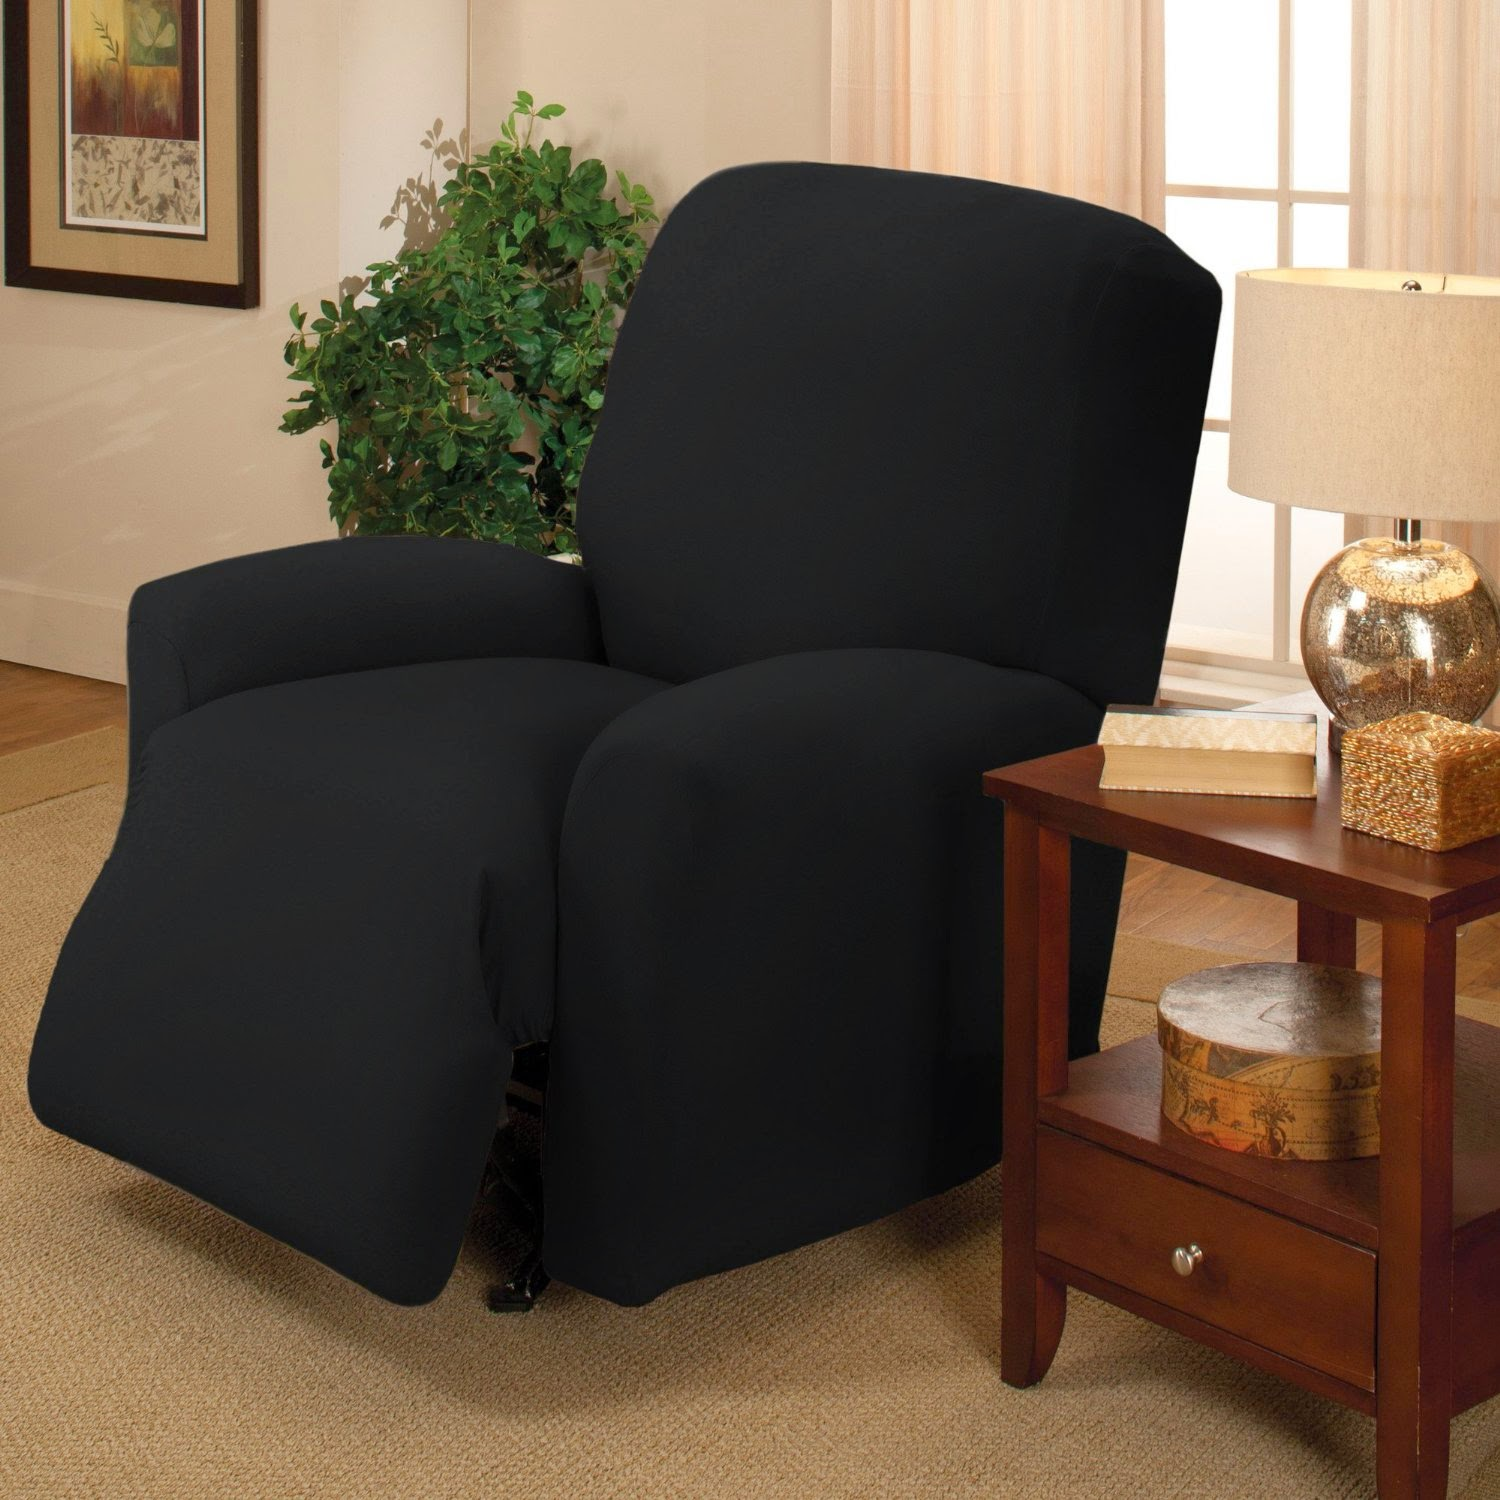 Best Recliner Sofa Brand Recommendation Wanted ~ Best Recliner Sofa Brand